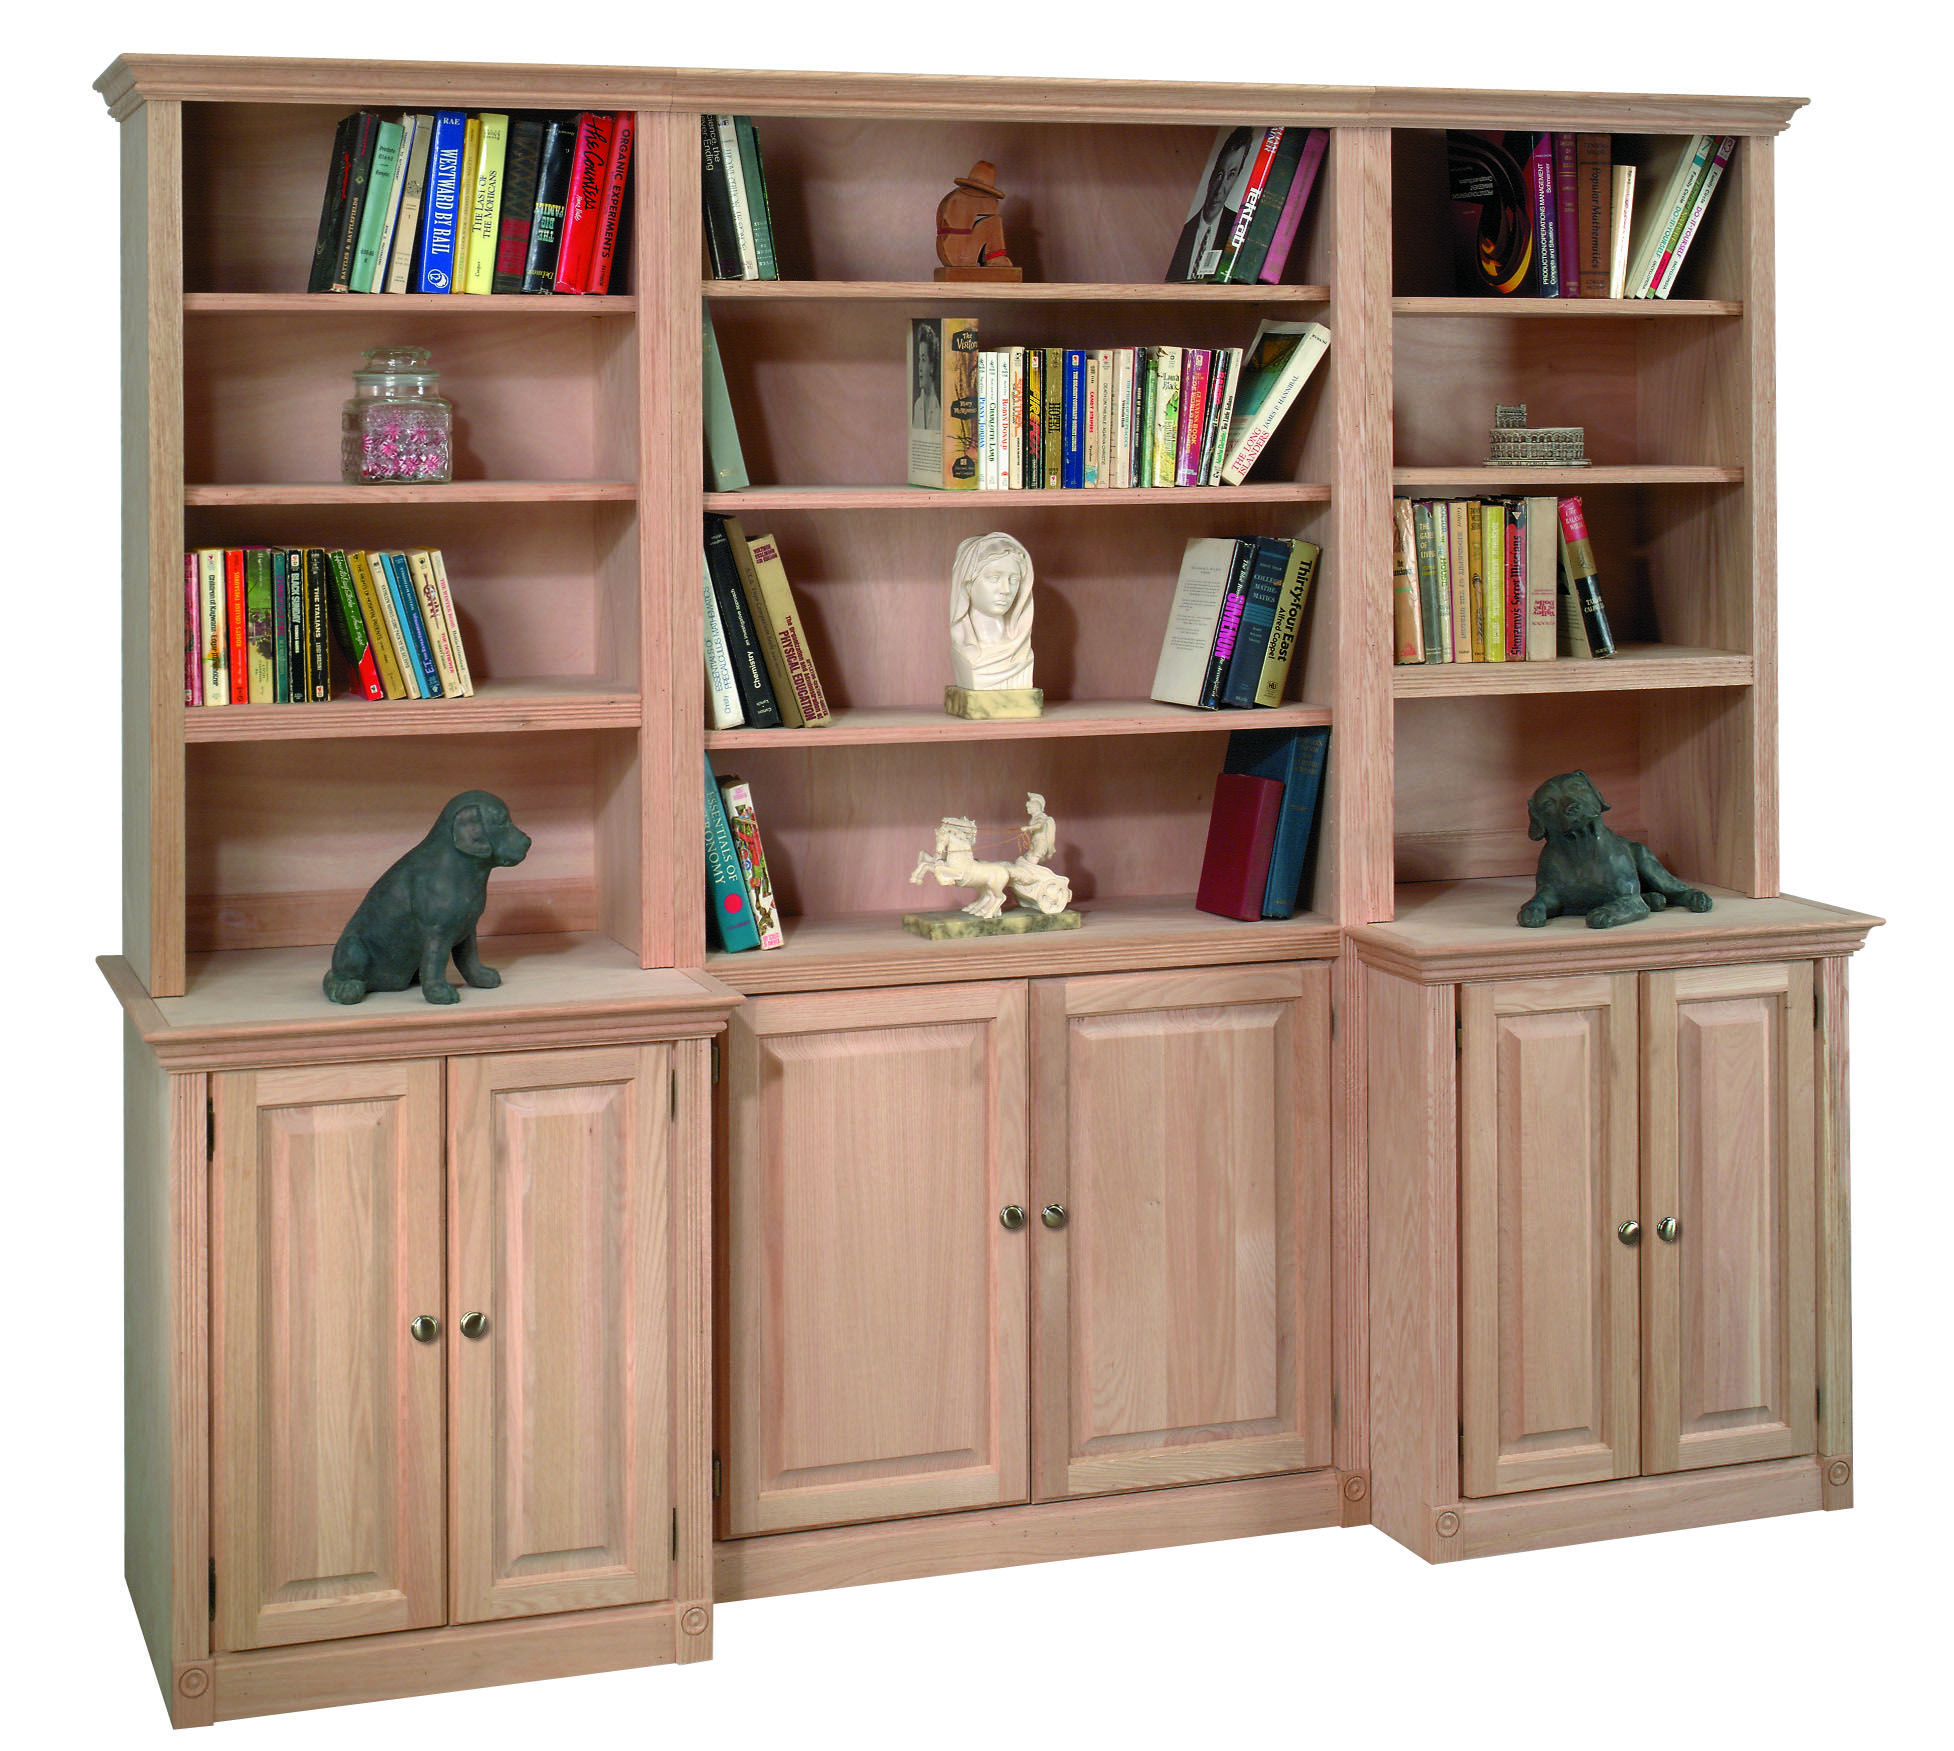 Beautiful Solid Wood Civita Bookcase And Wall Unit 6 Styles To Choose From With Plenty To Choose From W Wood Shelving Units Brown Furniture House Interior